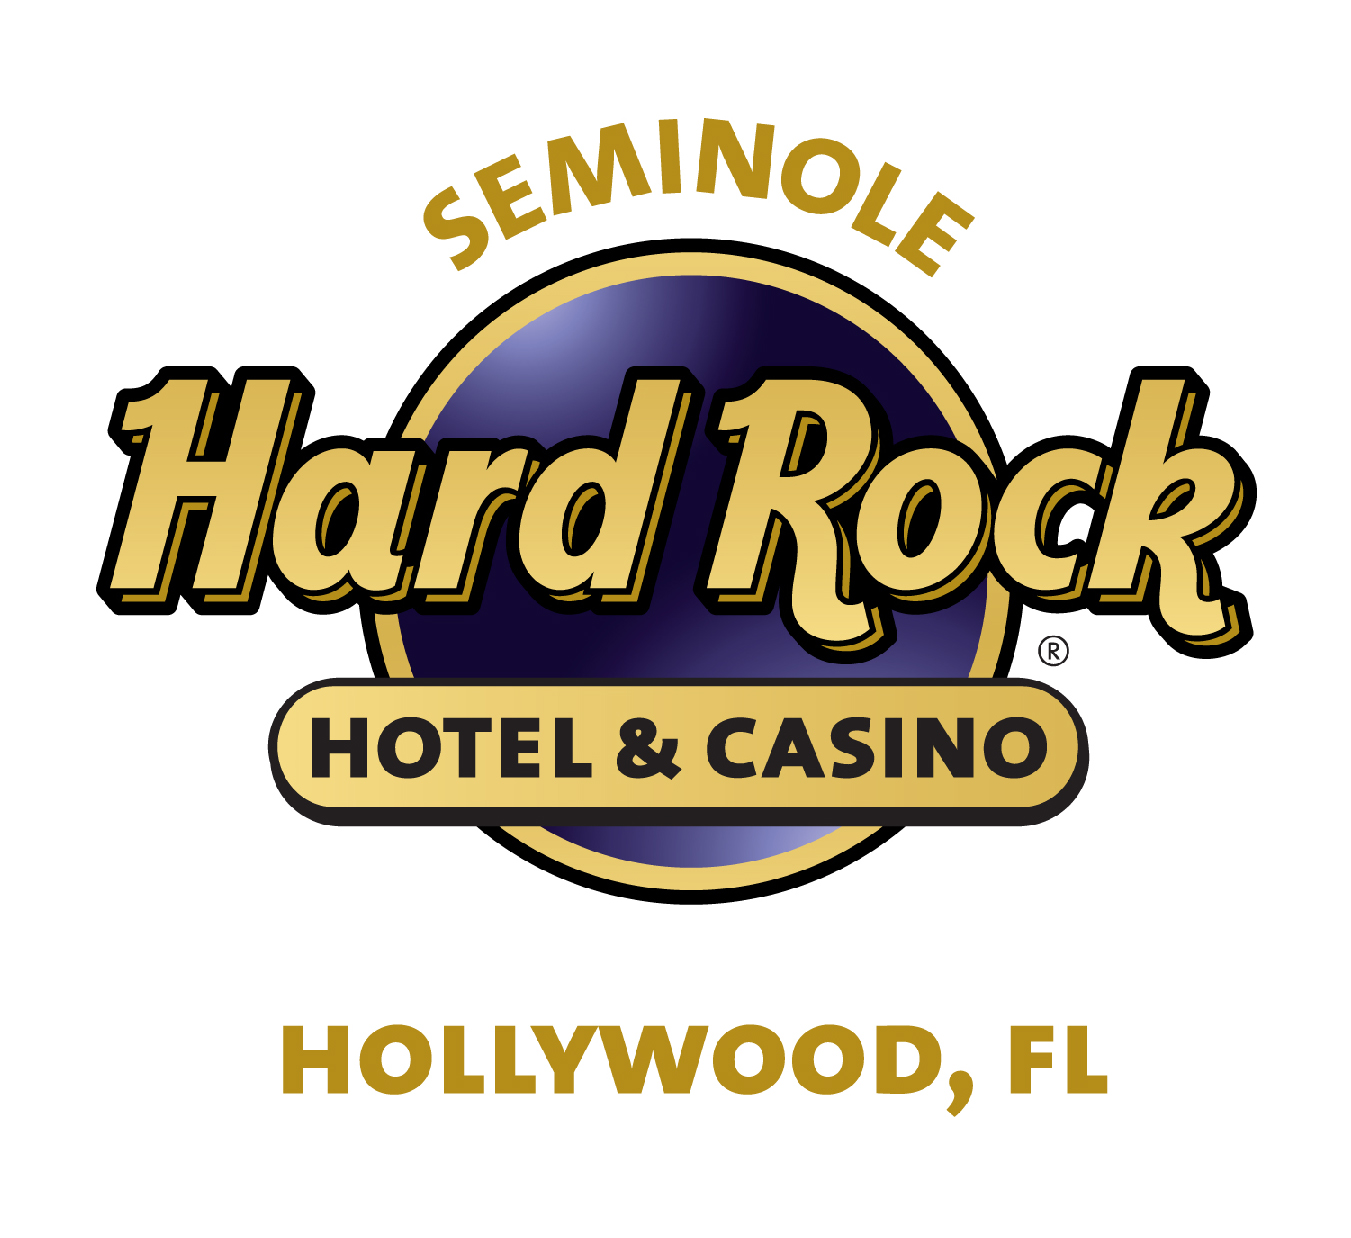 Hard Rock Seminole Logo